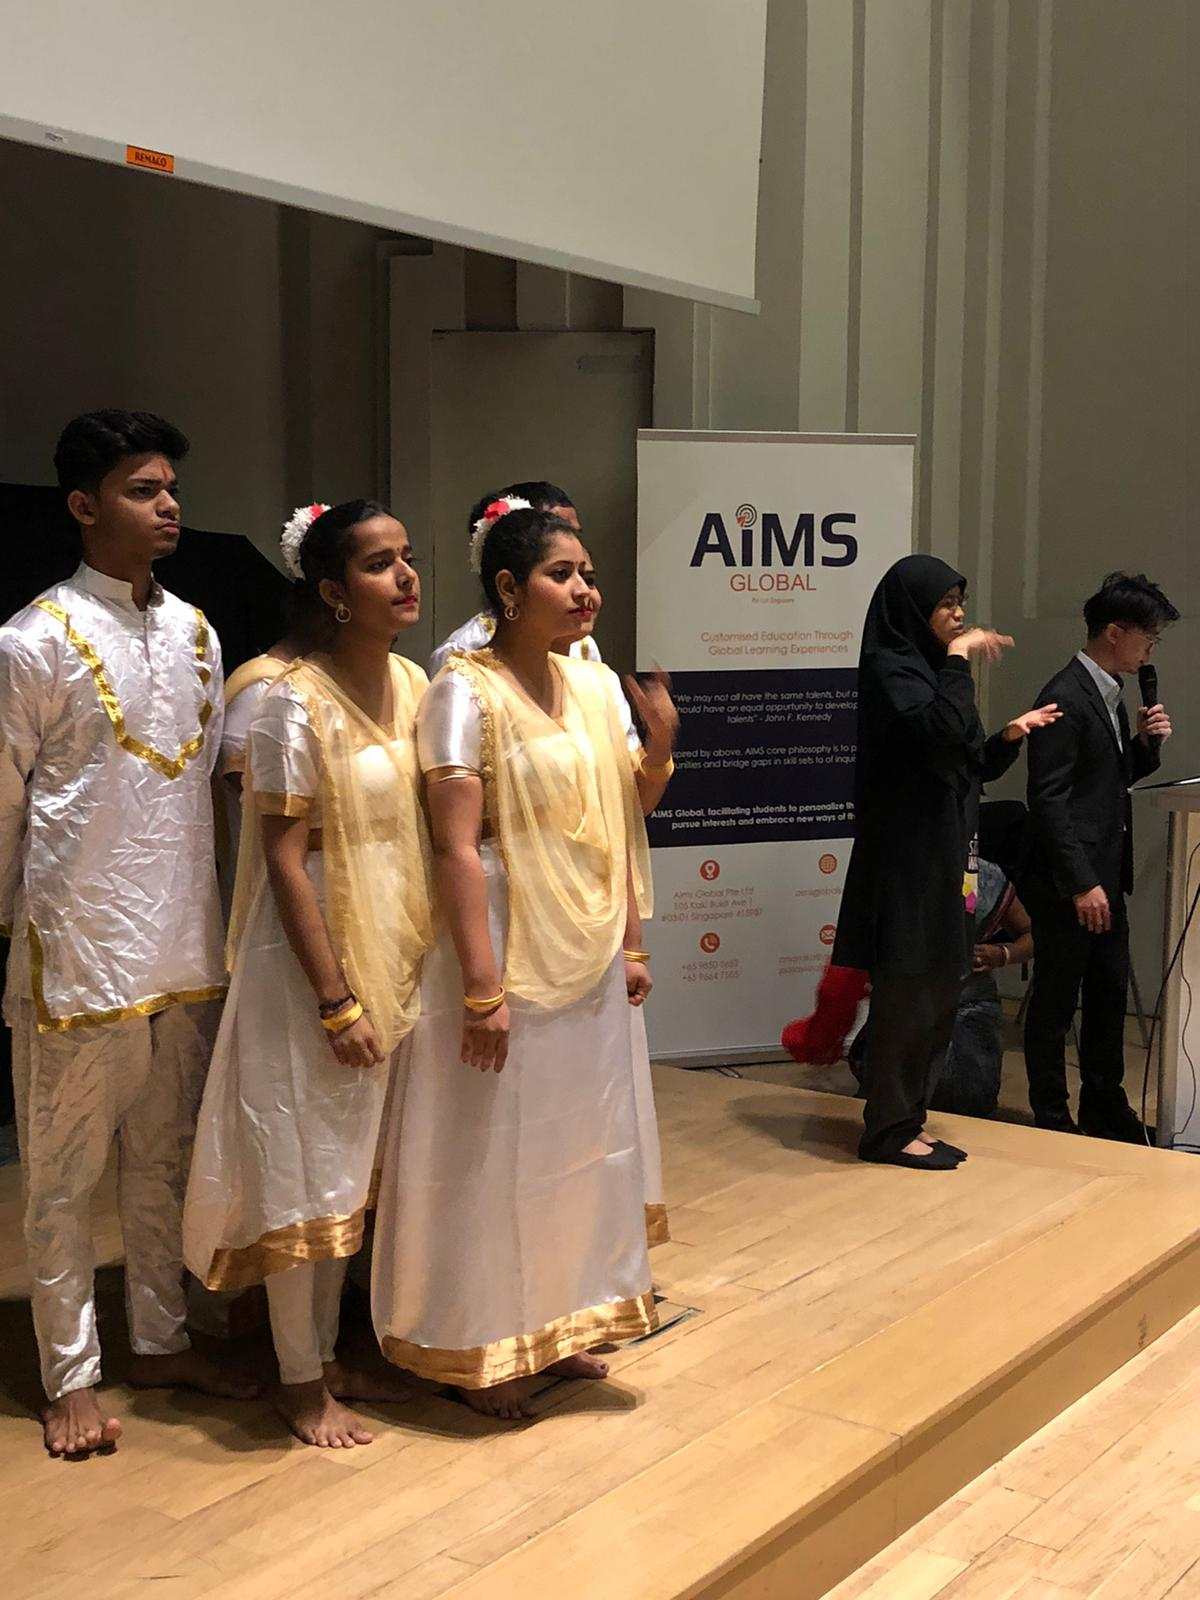 In an event aptly titled DATLP:Transcending Boundaries, participants from India together with differently abled group from Singapore showcased their special talents in singing, storytelling, magic, handicrafts and caricatures. Photo Courtesy: AiMS Global